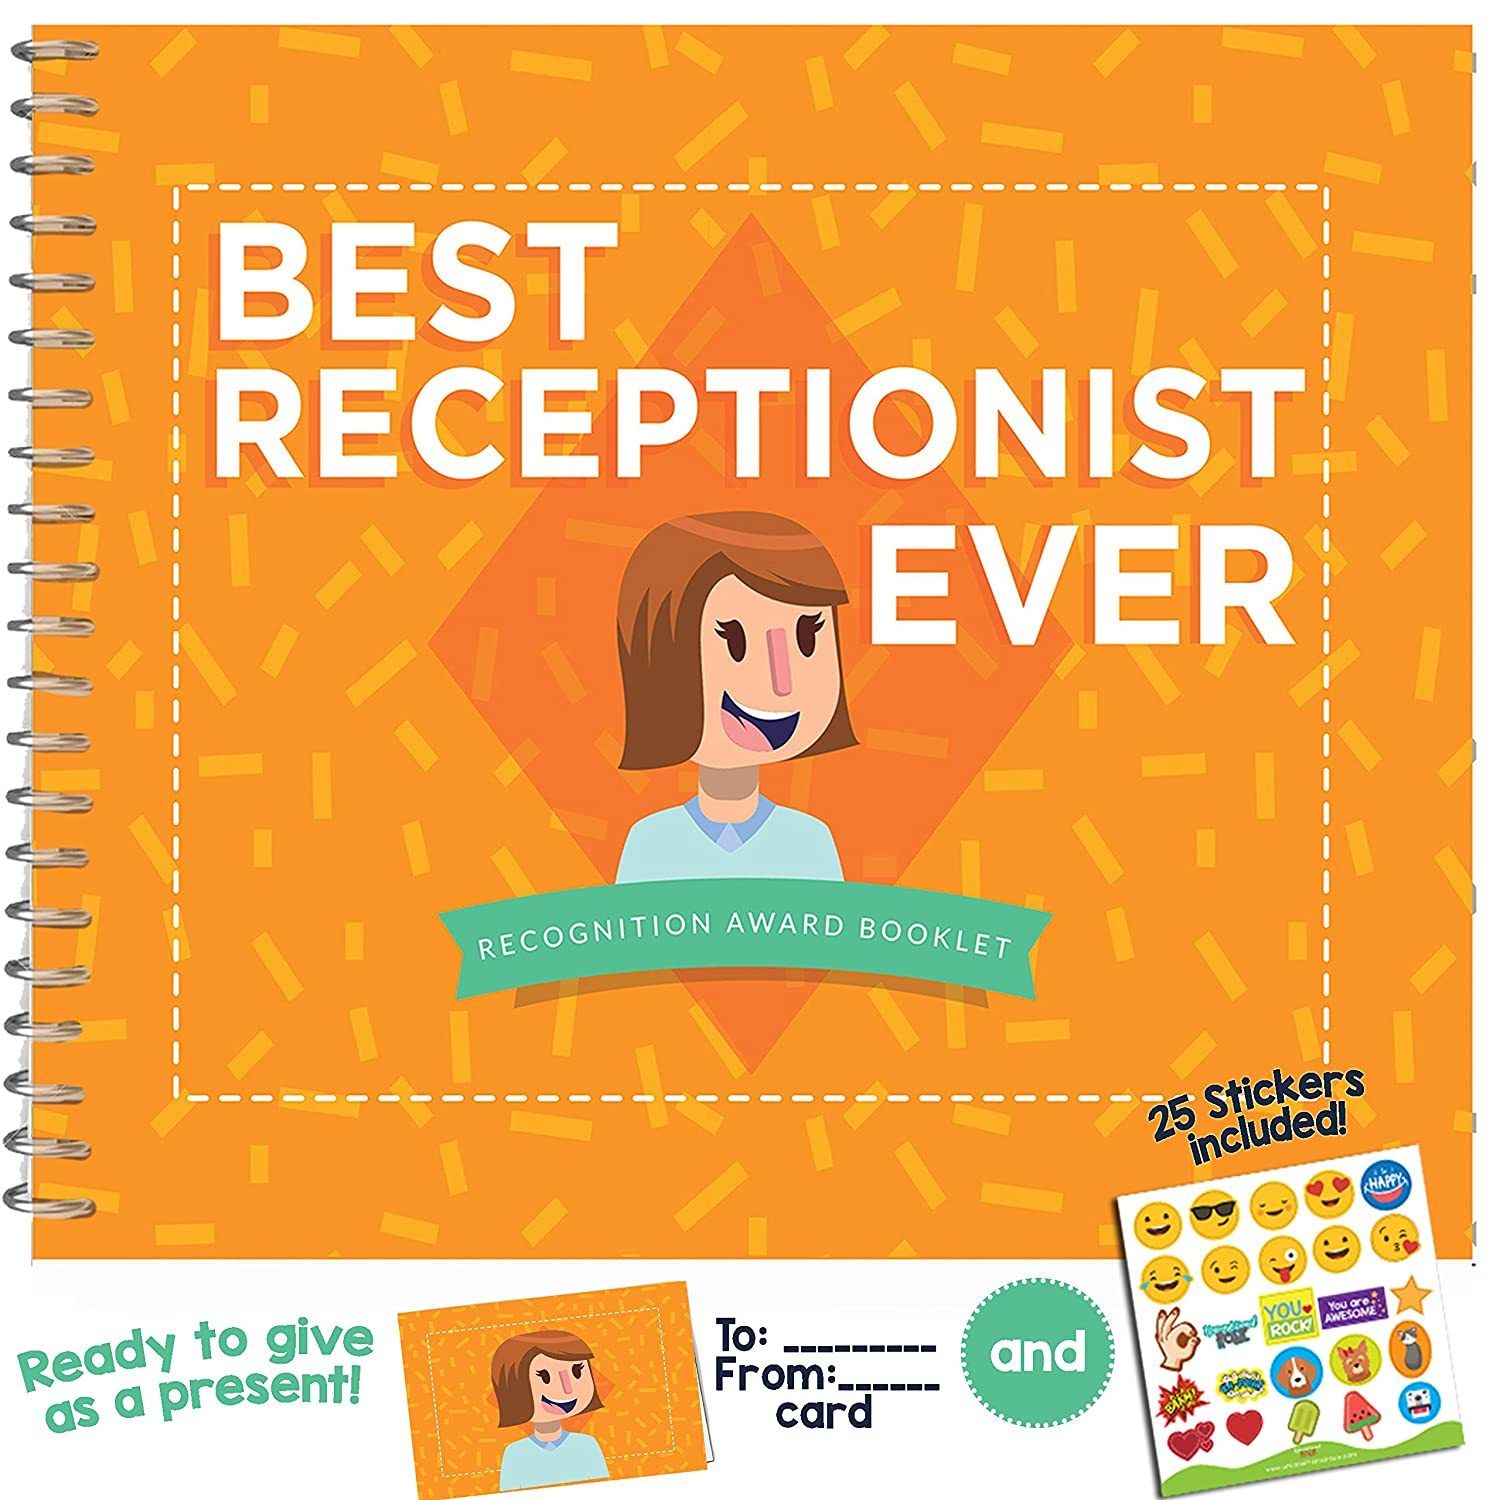 Amazon.com: Best Receptionist Ever Edition - This 24-page Booklet Is ...